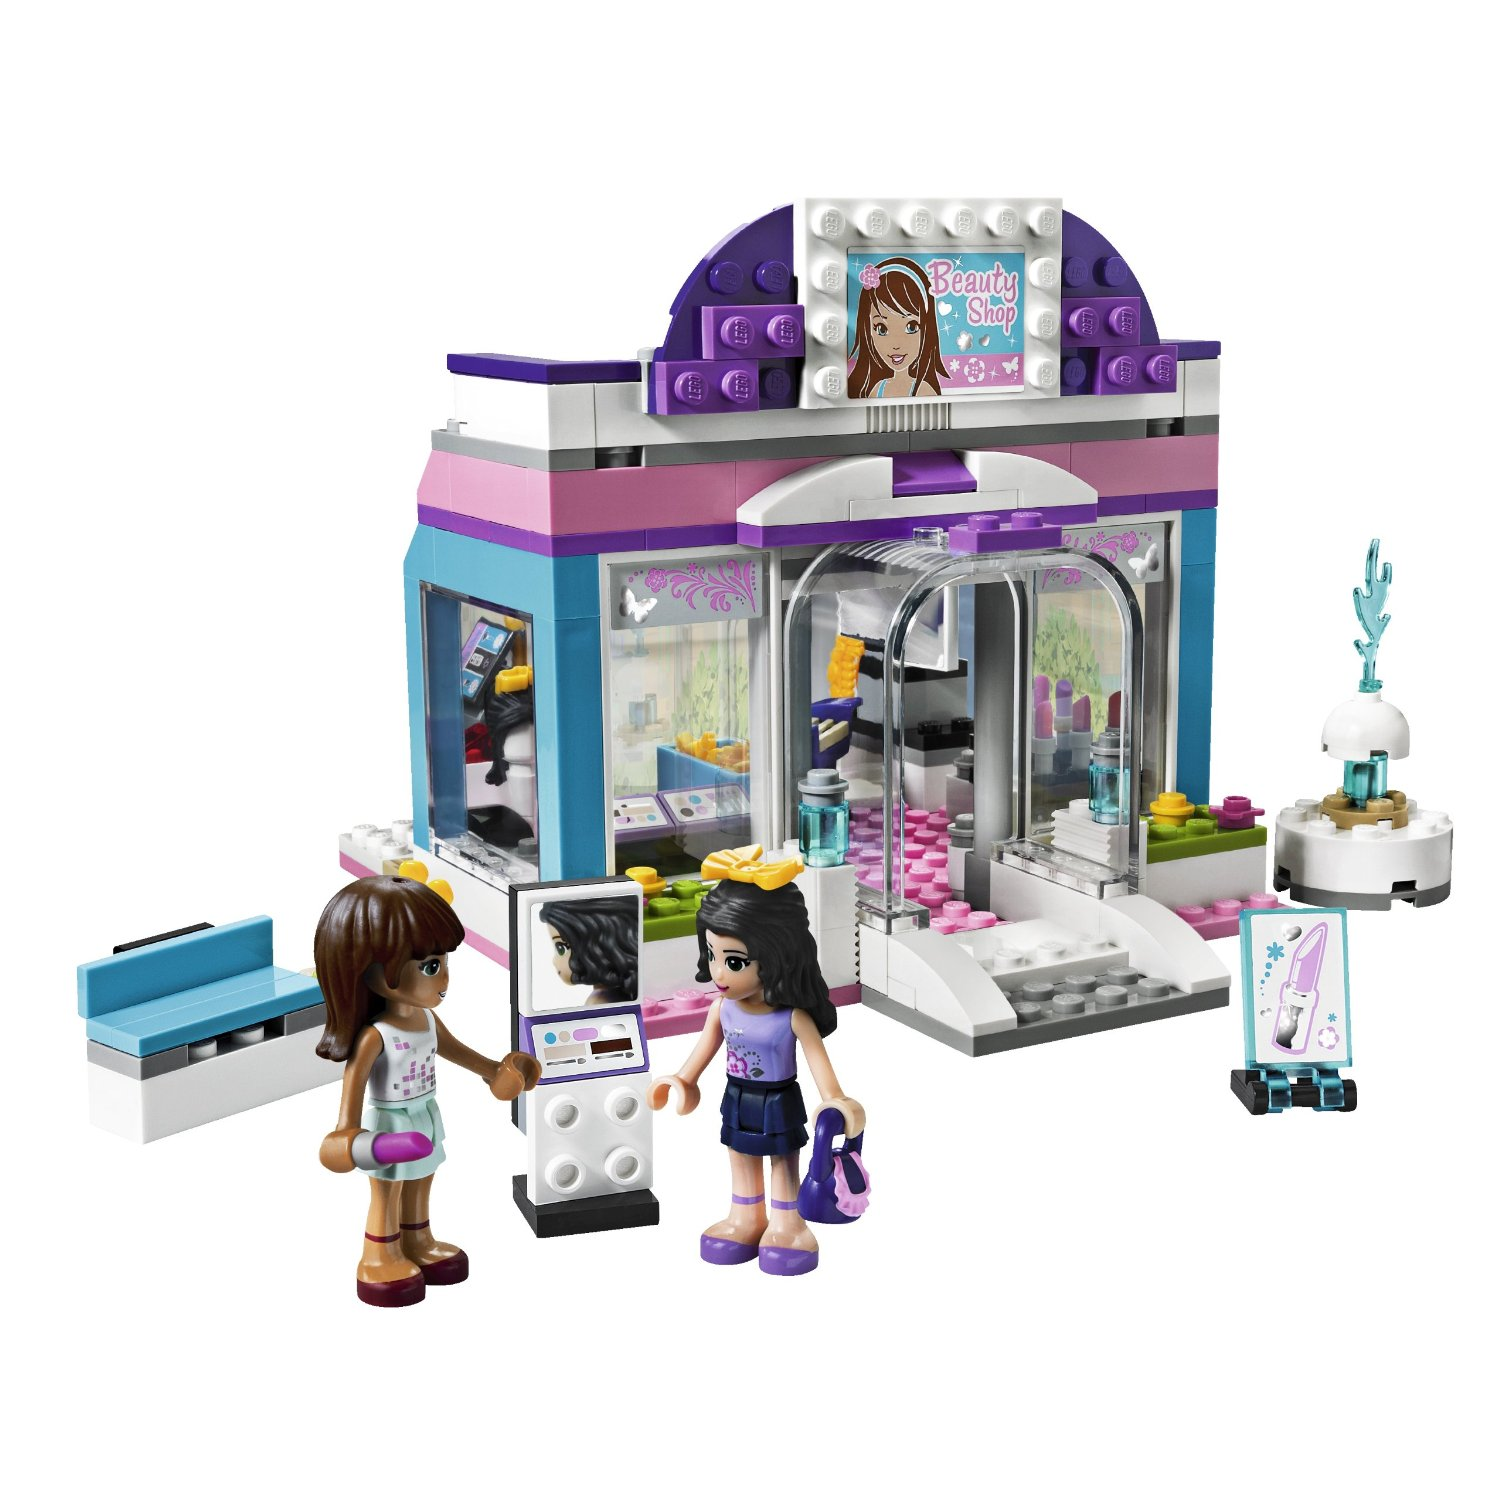 Lego friends le salon de beaut for Lego friends salon de coiffure